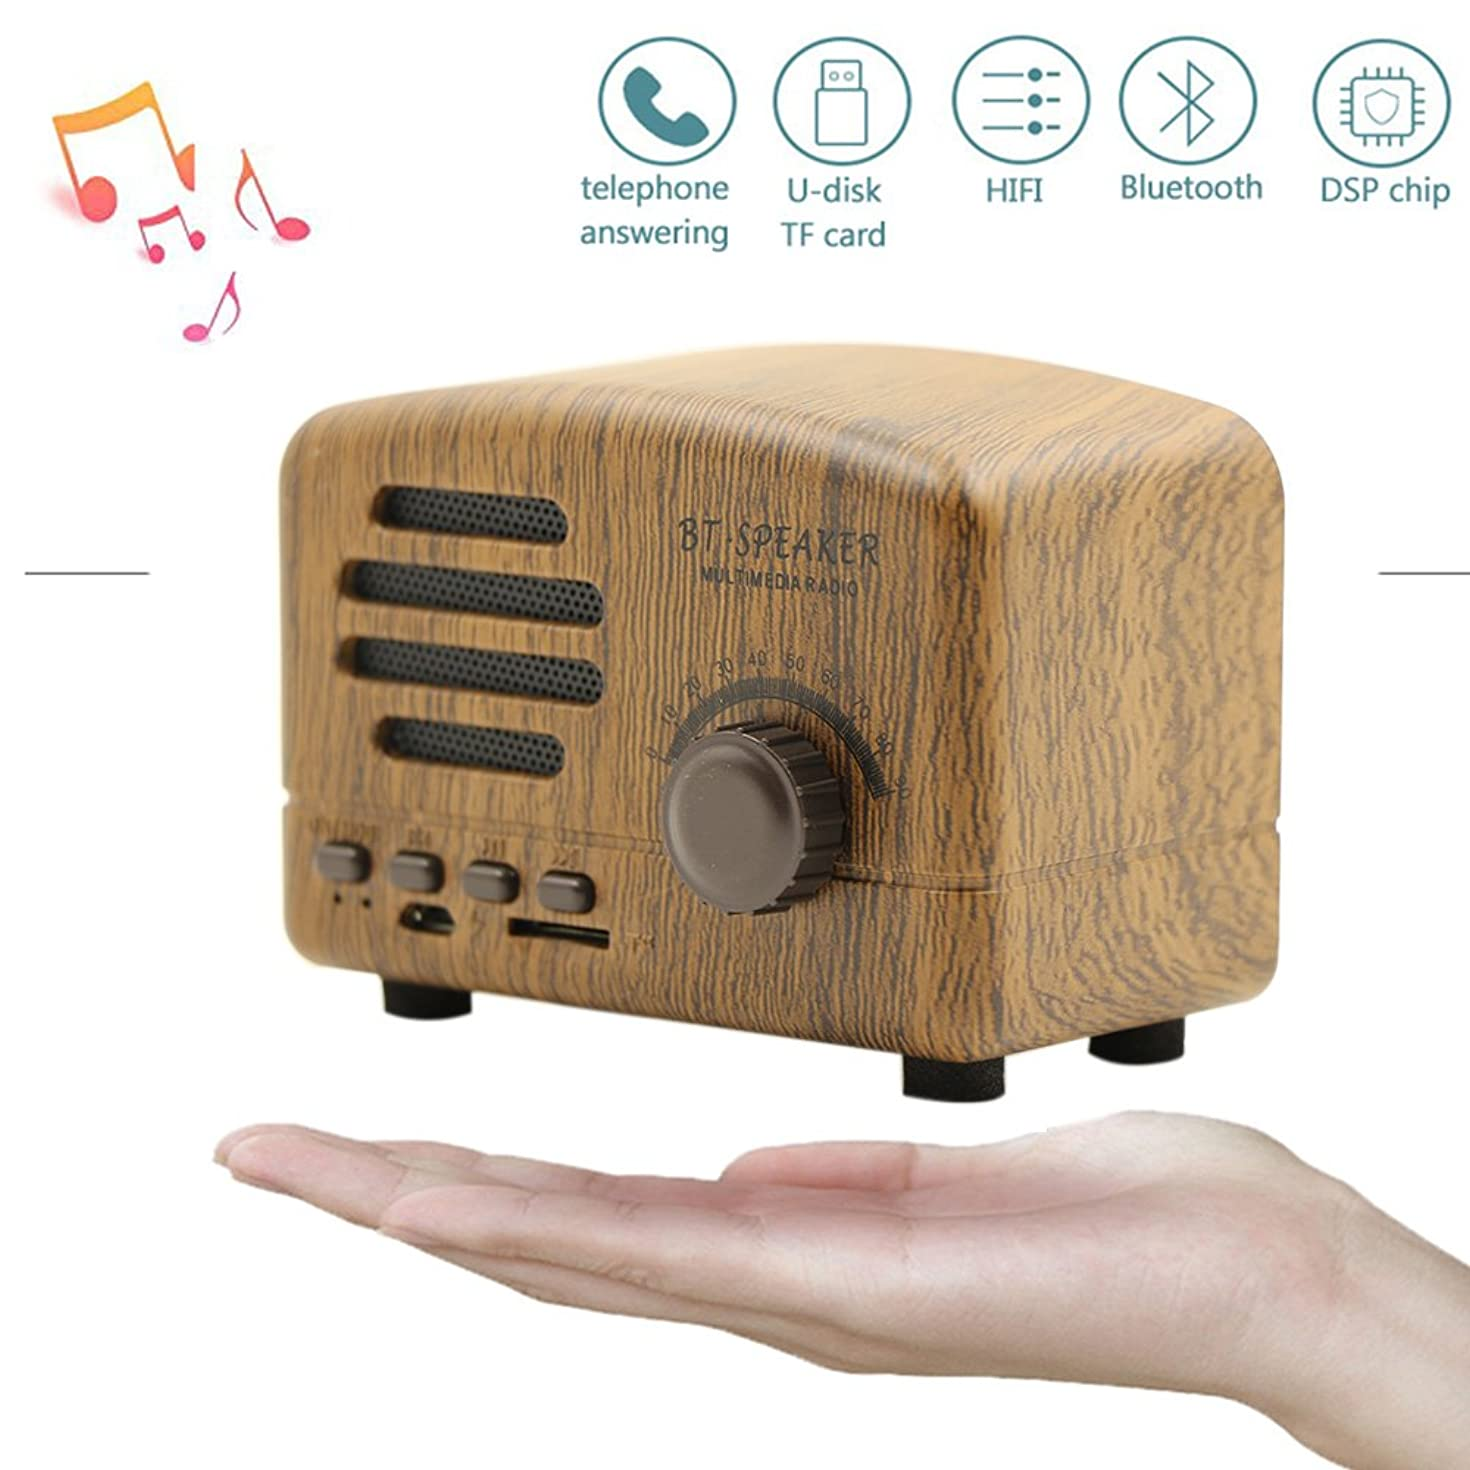 Portable Bluetooth Stereo Speaker,Langxian Enhanced Bass Retro Wireless Vintage V4.0 Speaker with TF Card Slot For Travel, Home, Beach, Kitchen, Outdoors